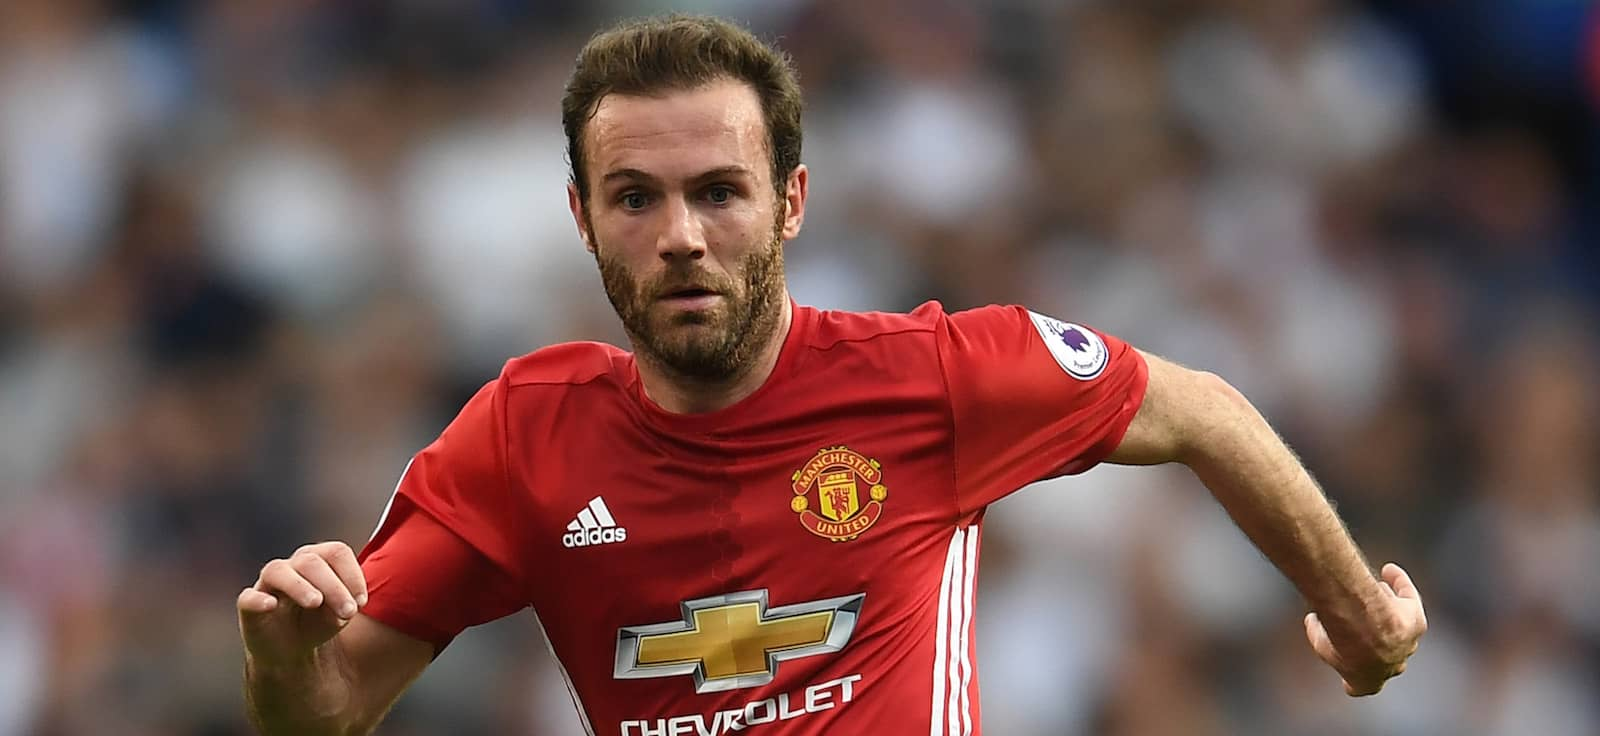 Manchester United fans thrilled with Juan Mata's performance against LA Galaxy